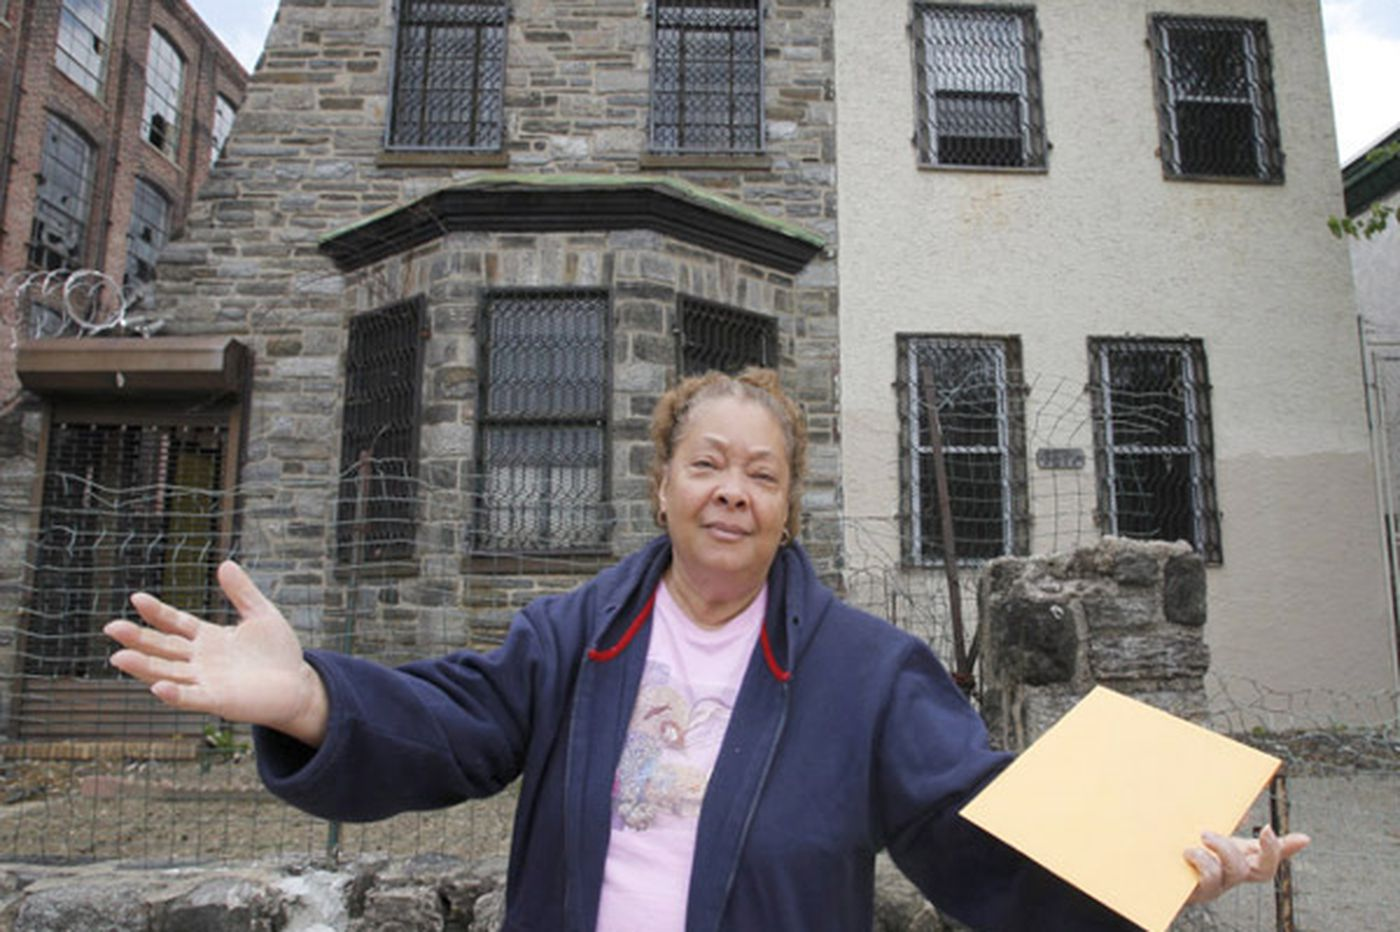 Woman sinks her life savings into blighted house; city sinks her dreams